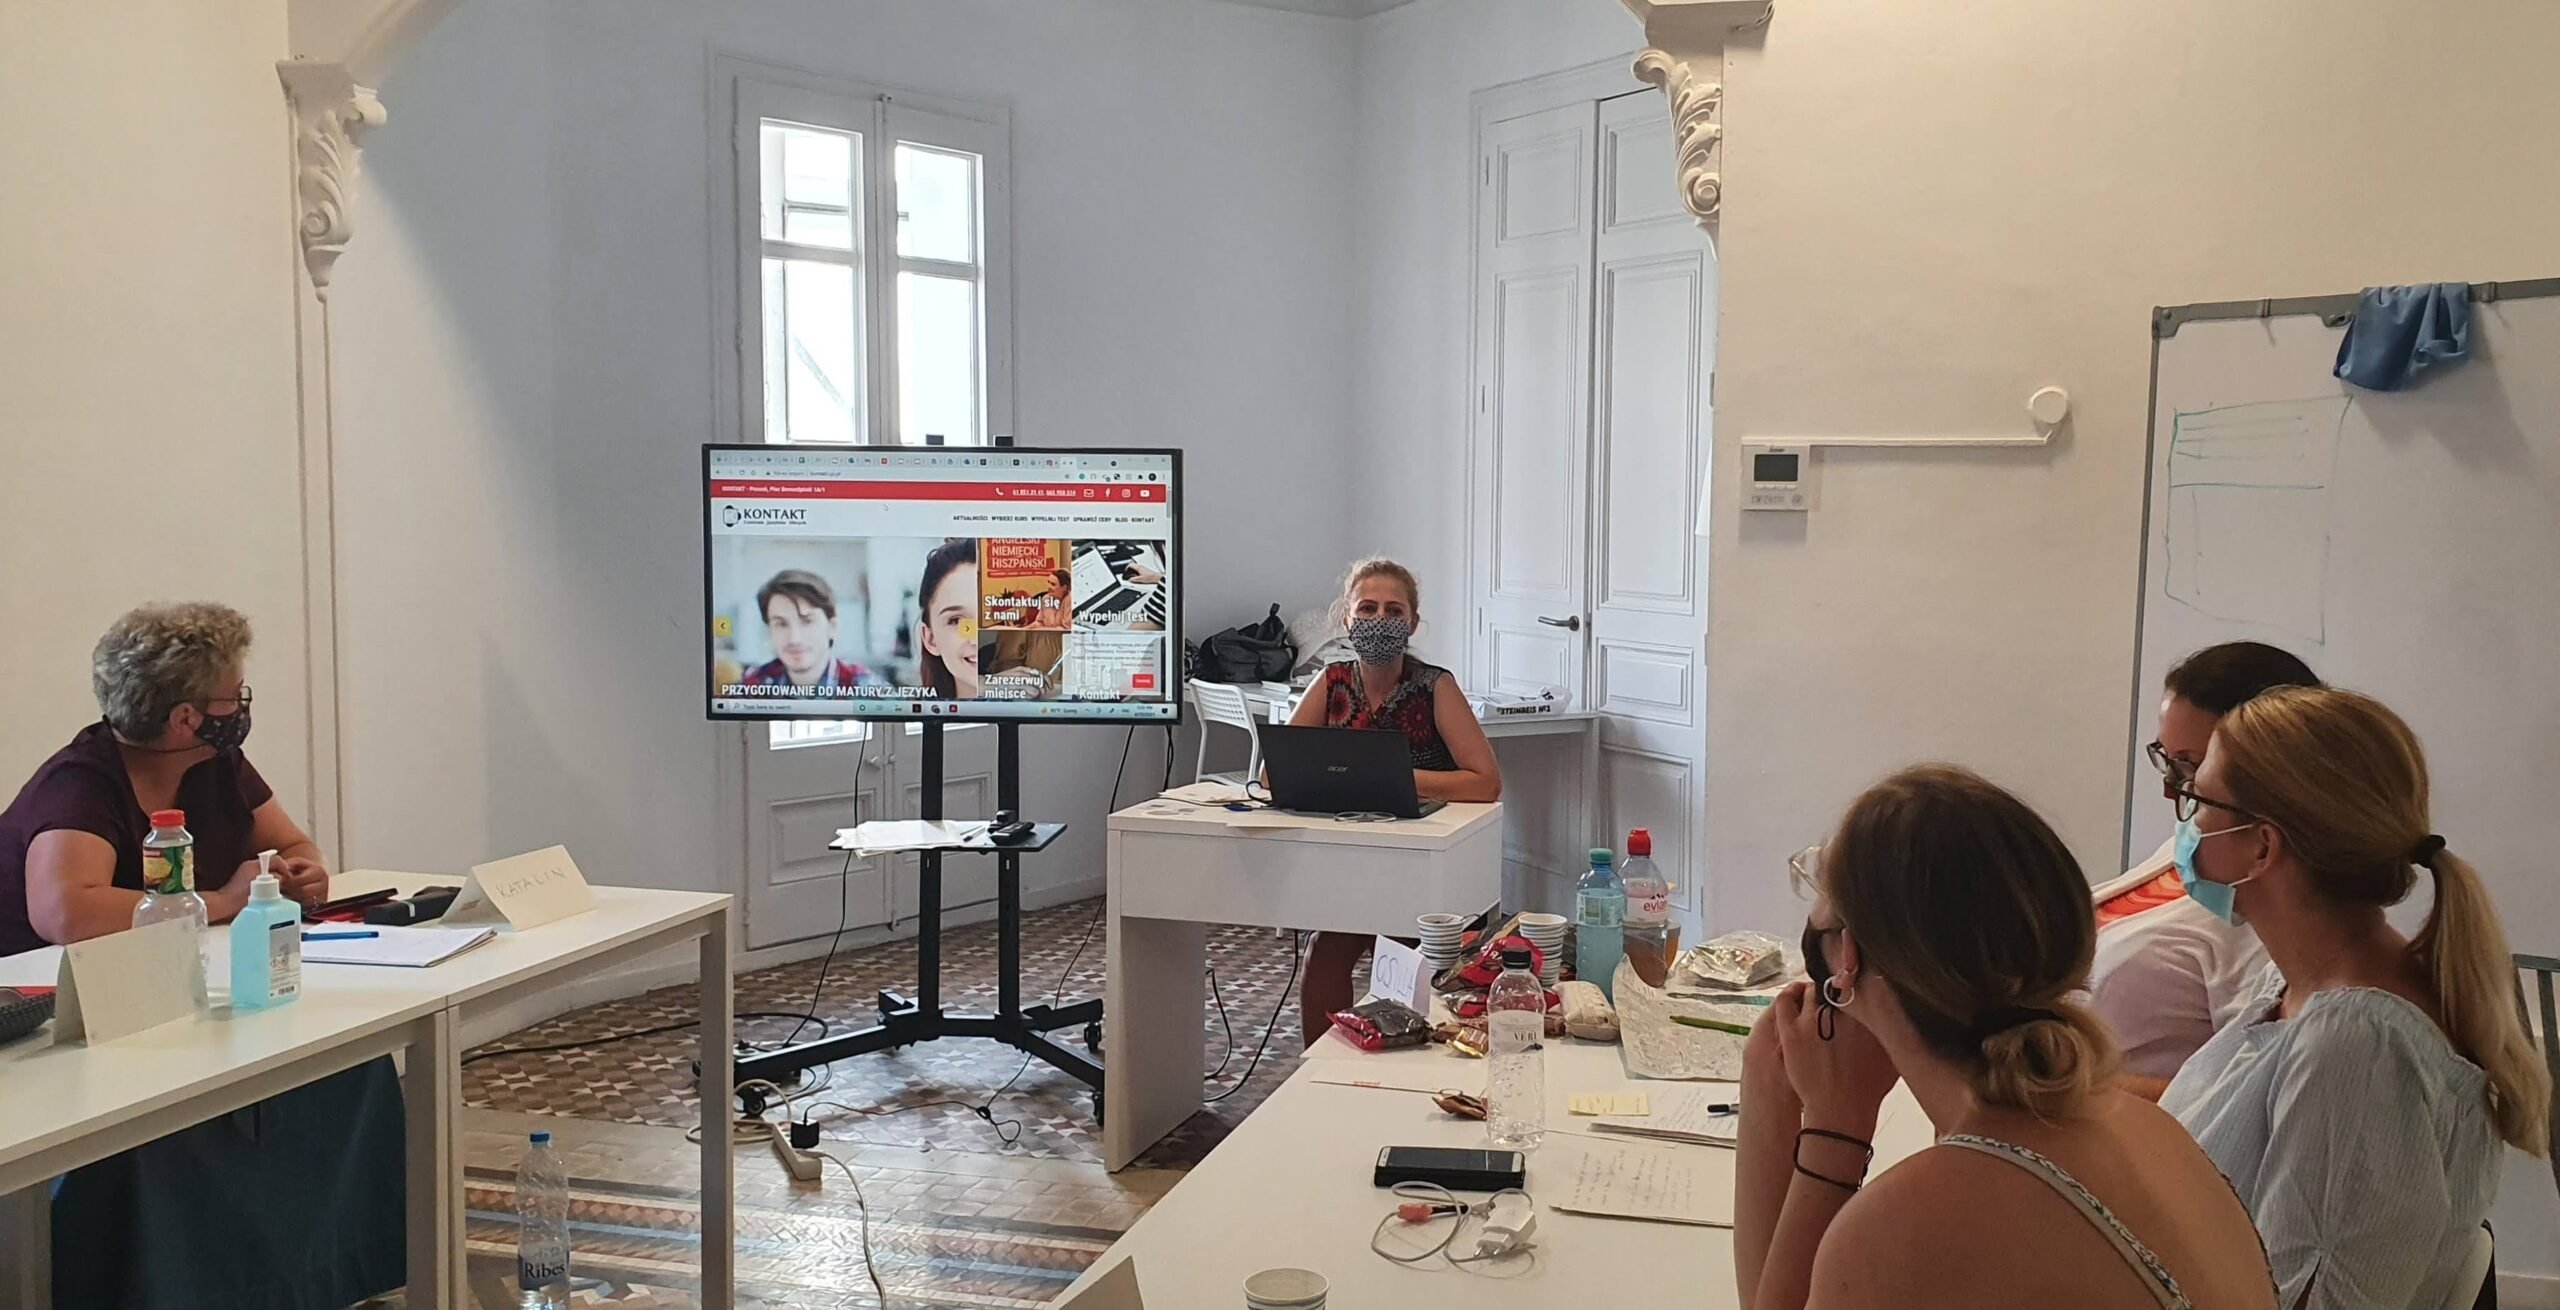 """""""Let's teach Europe!"""" disseminated in Spain, Greece and Poland"""